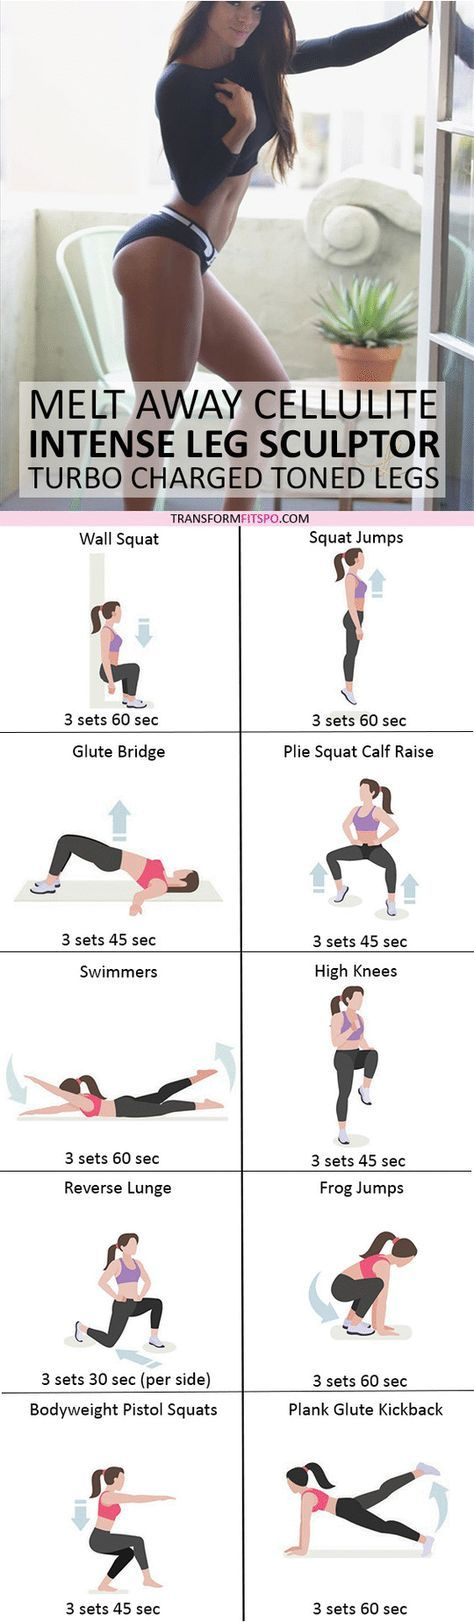 #womensworkout #workout #femalefitness Repin and share if this workout gave you sexy sculpted legs! Click the pin for the full workout.